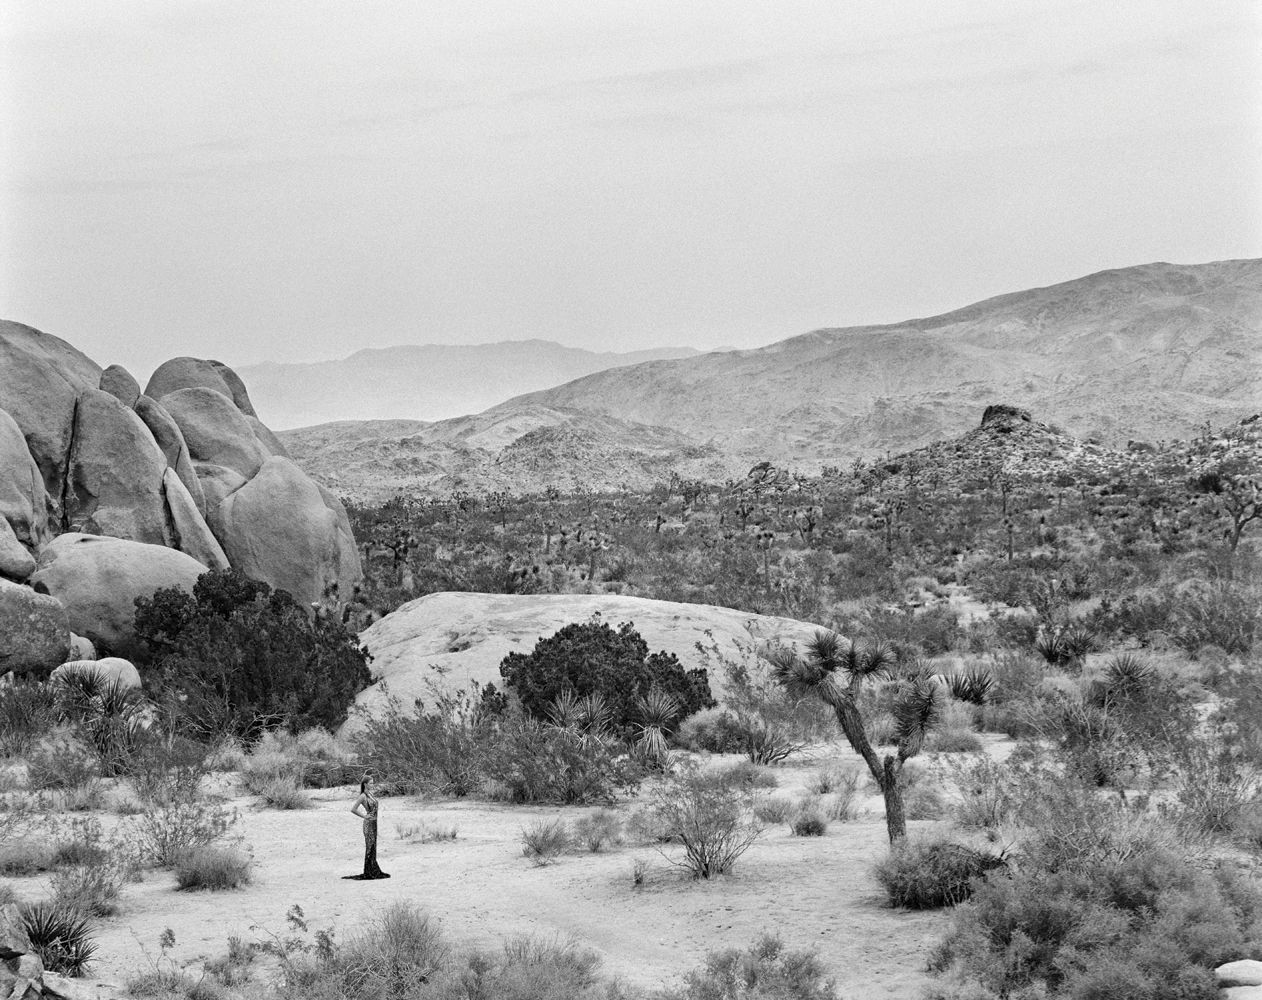 Nigel Barker Photography presents Desolate Beauty in black and white